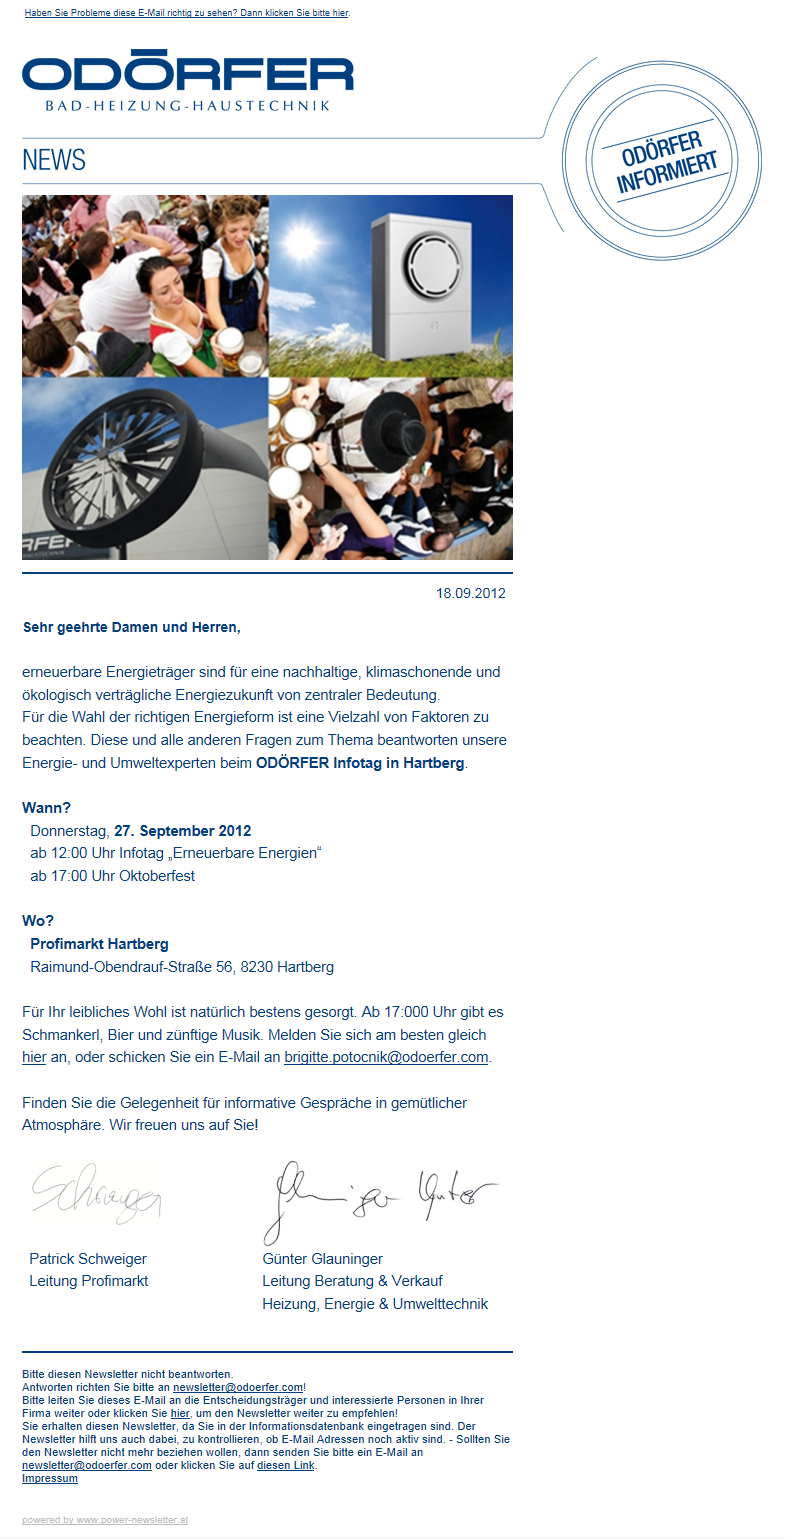 Newslettermarketing mit dem power newsletter Tool aus Graz